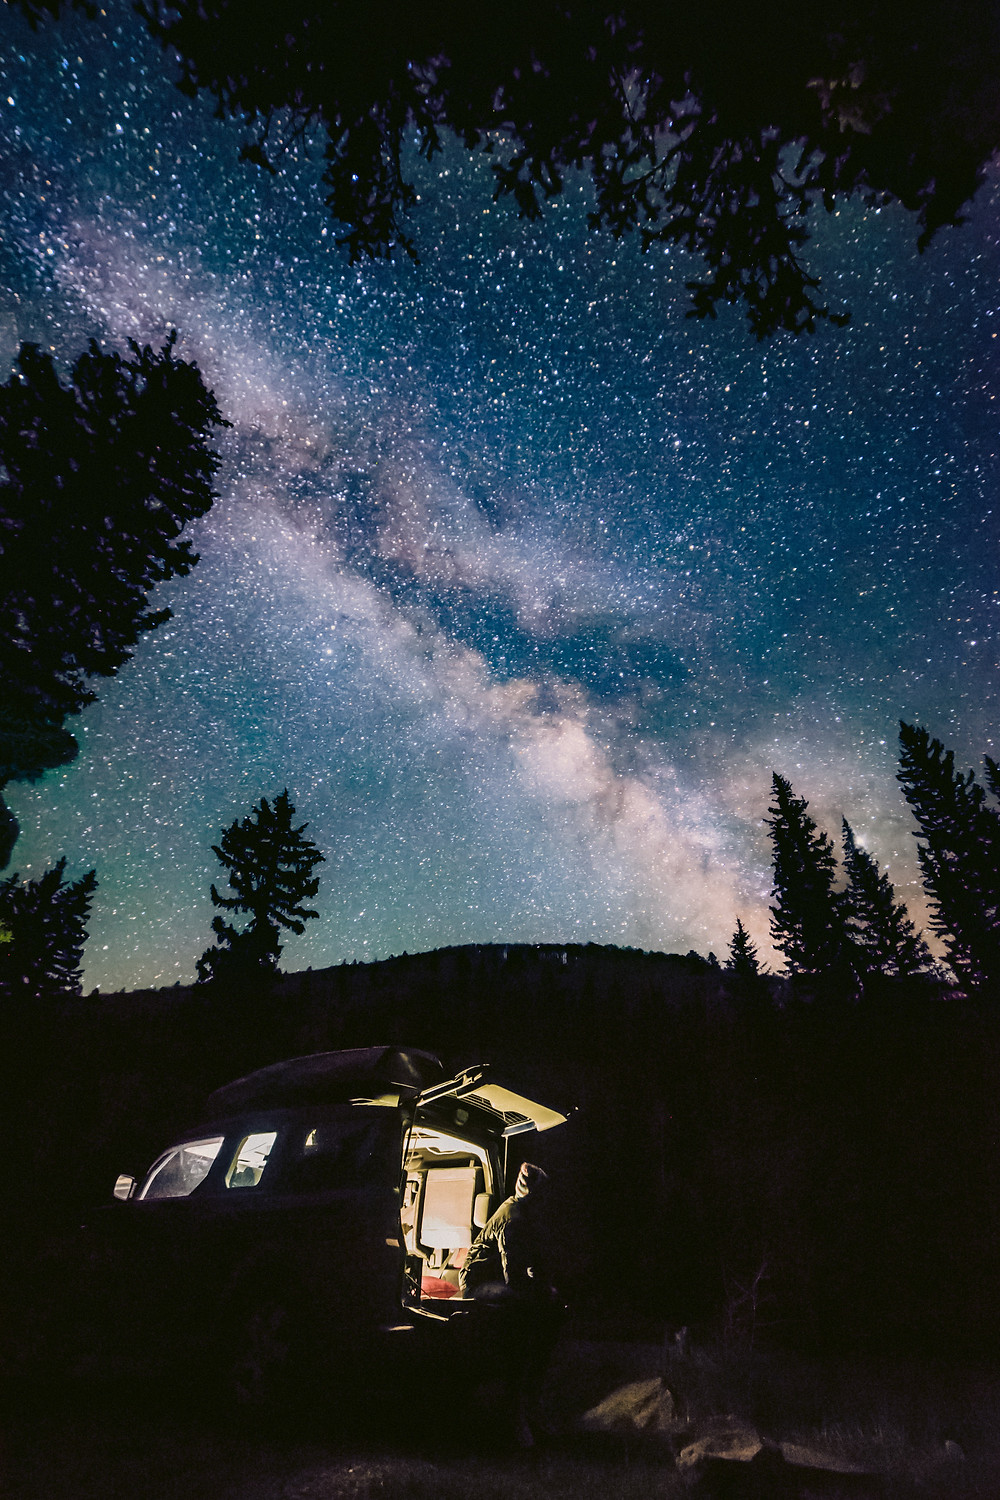 Milky Way above lit up car camping.